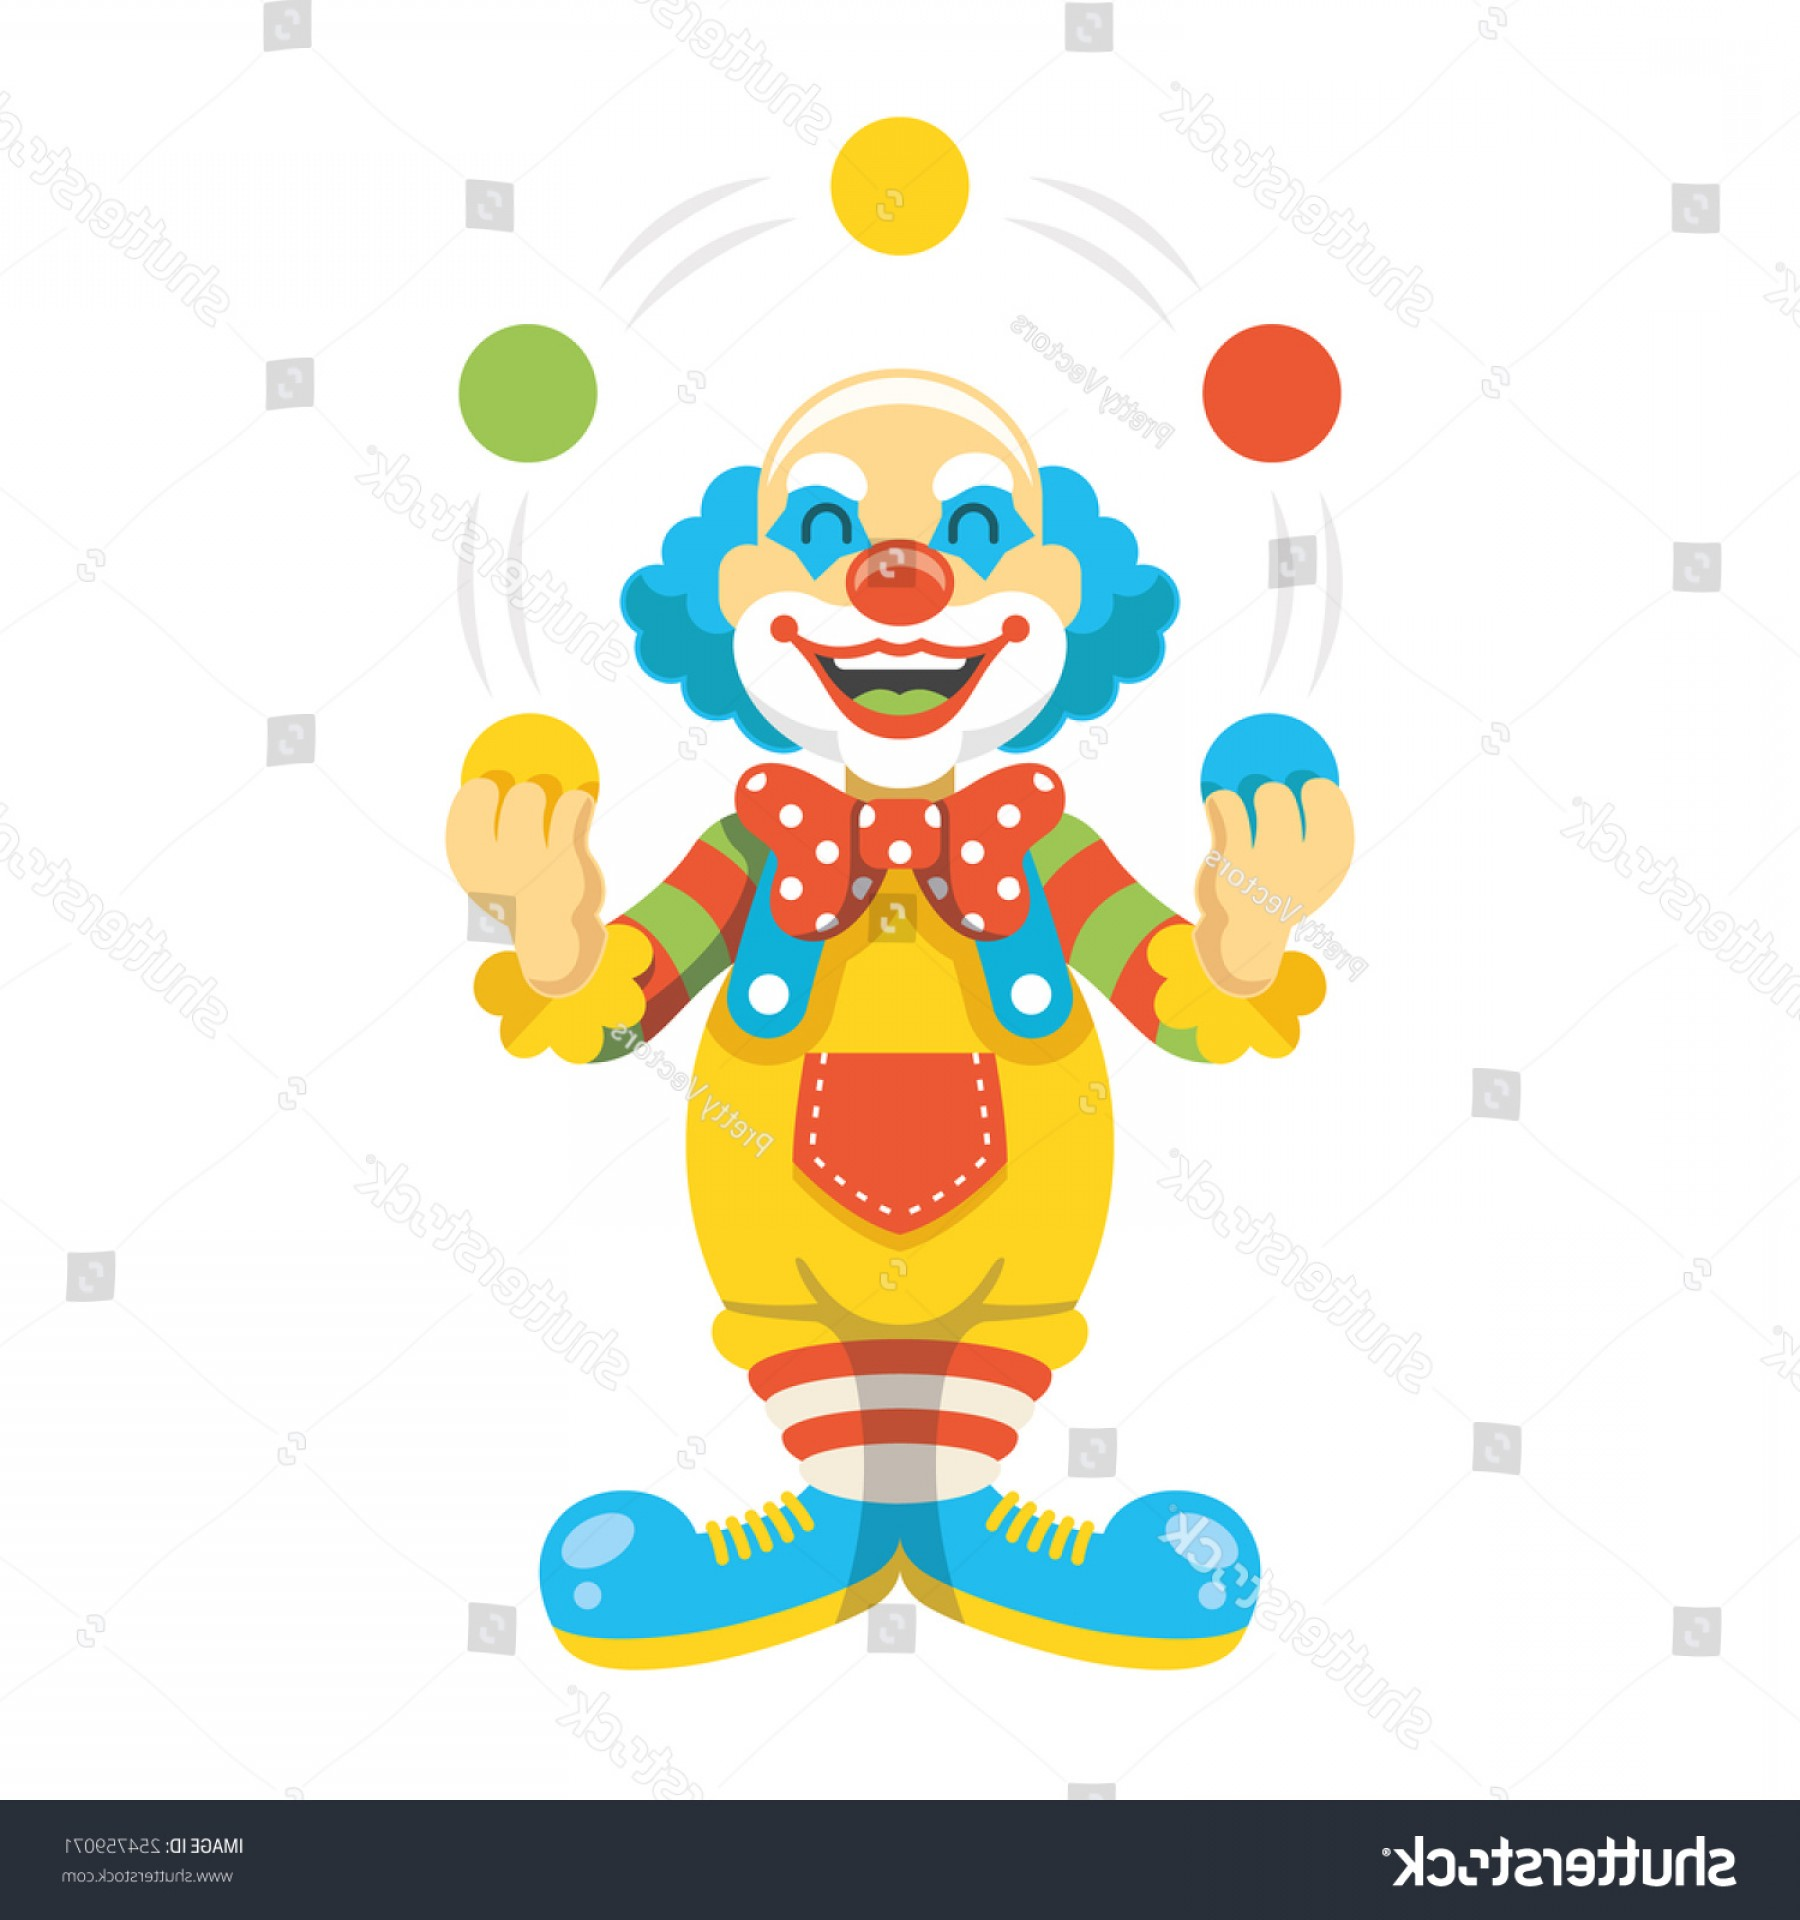 Pennywise Clown Vector: Funny Clown Character Vector Illustration Creative